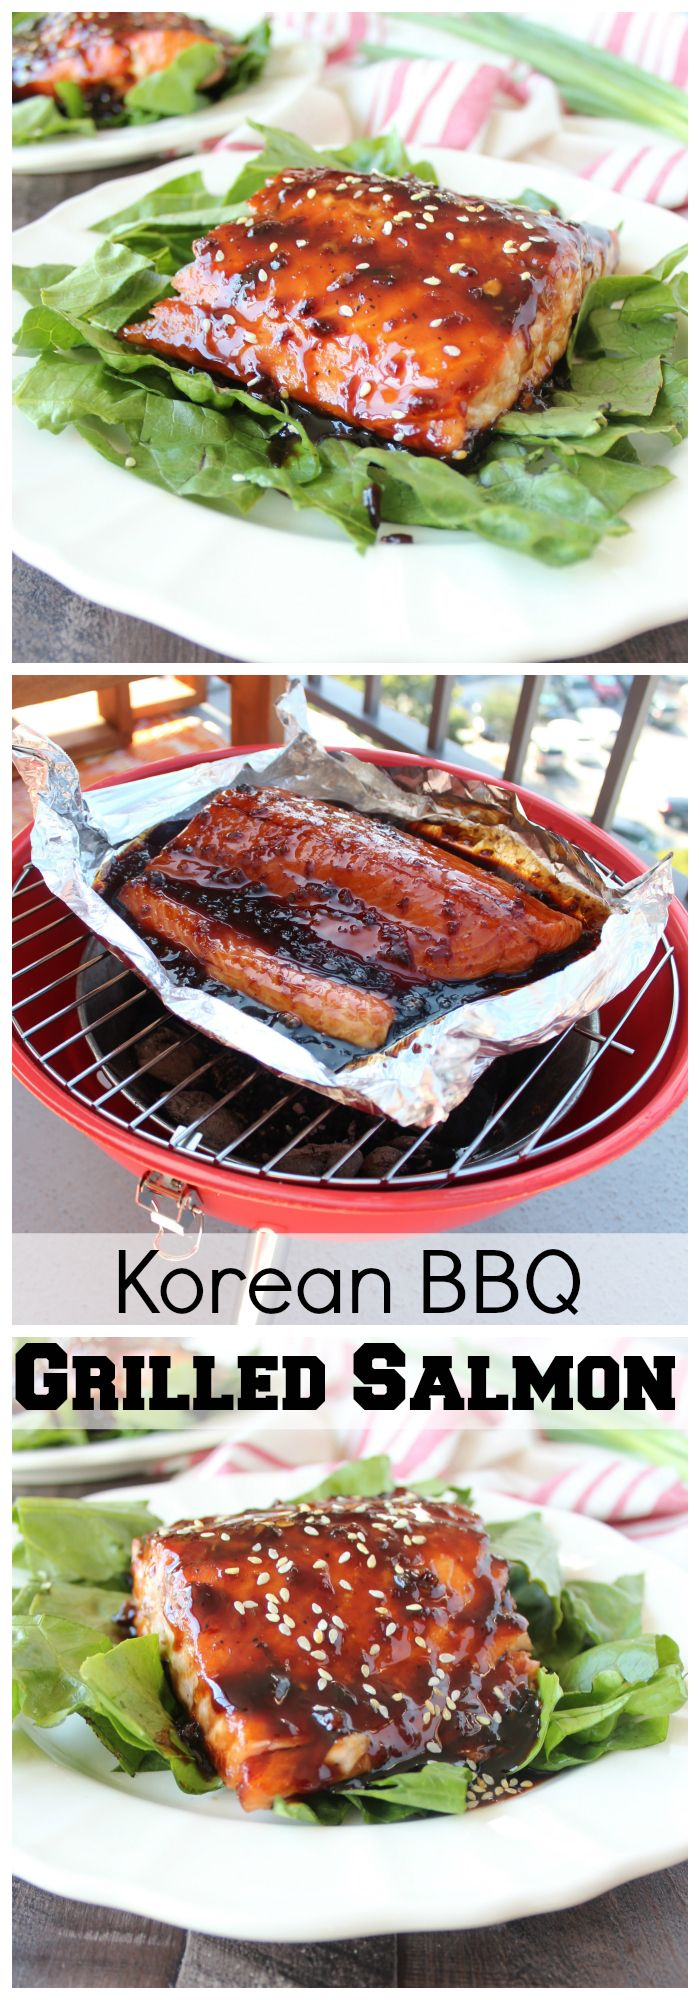 Homemade Korean BBQ sauce covered salmon recipe grilled on @worldmarket's new Mini BBQ!